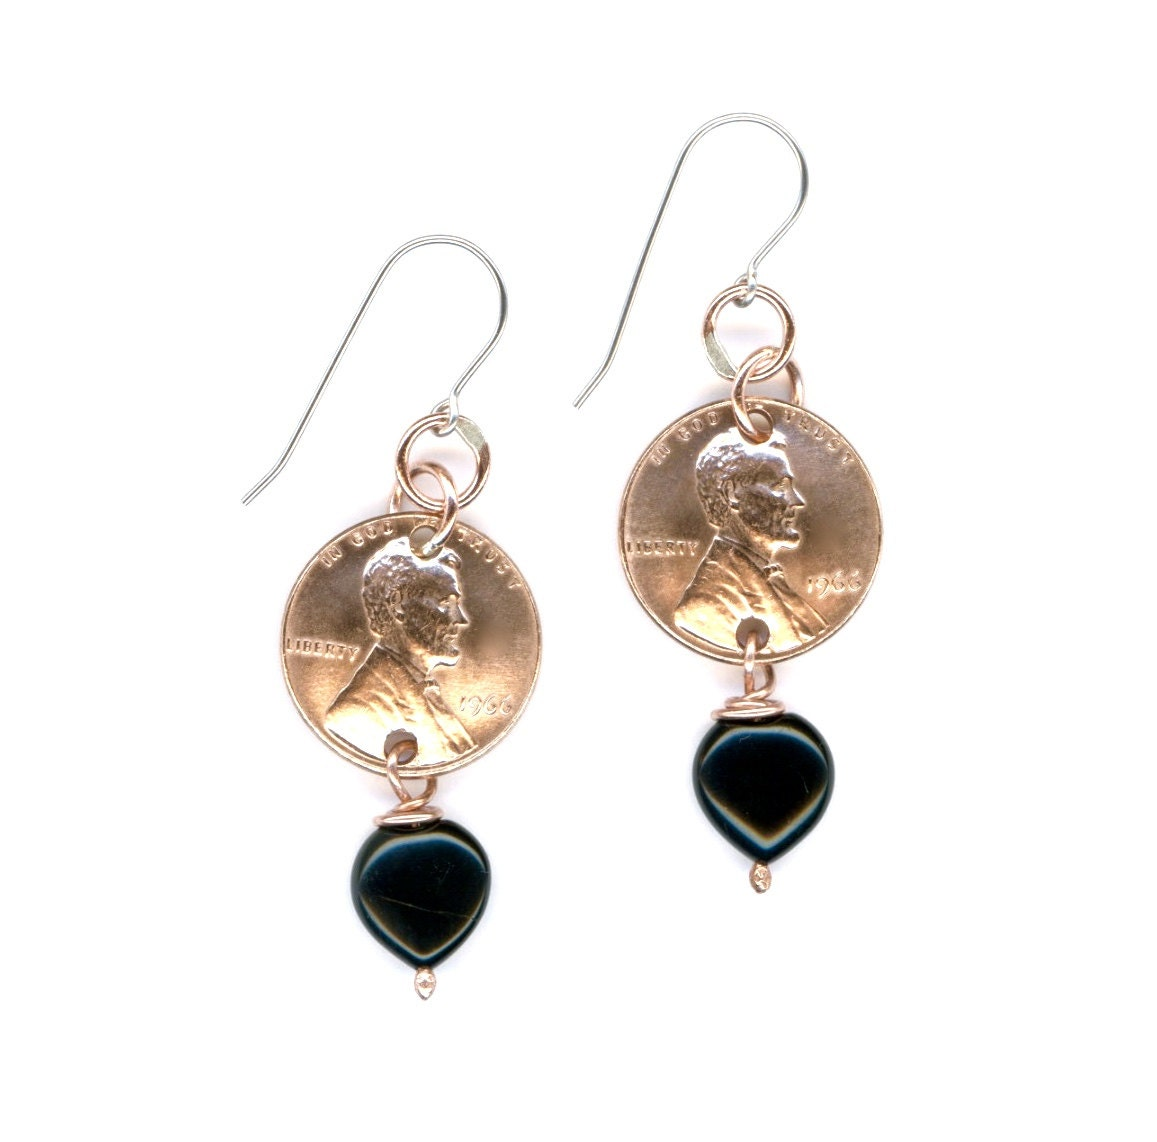 50th Birthday Gift Jewelry 1966 Penny Earrings By